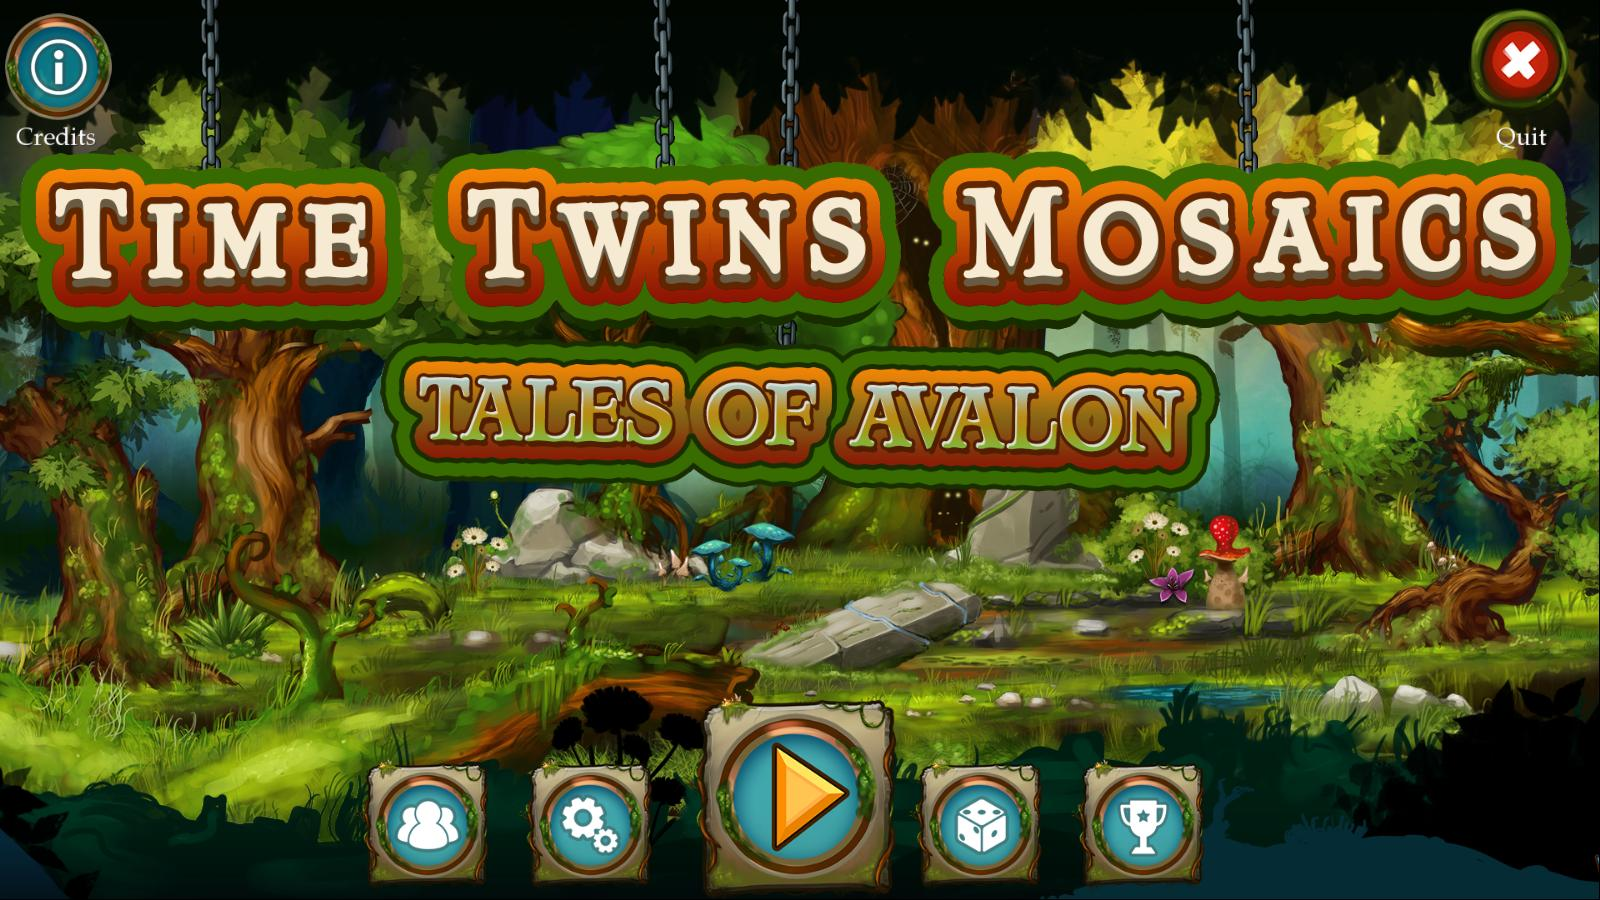 Time Twins Mosaics 3: Tales of Avalon (En)